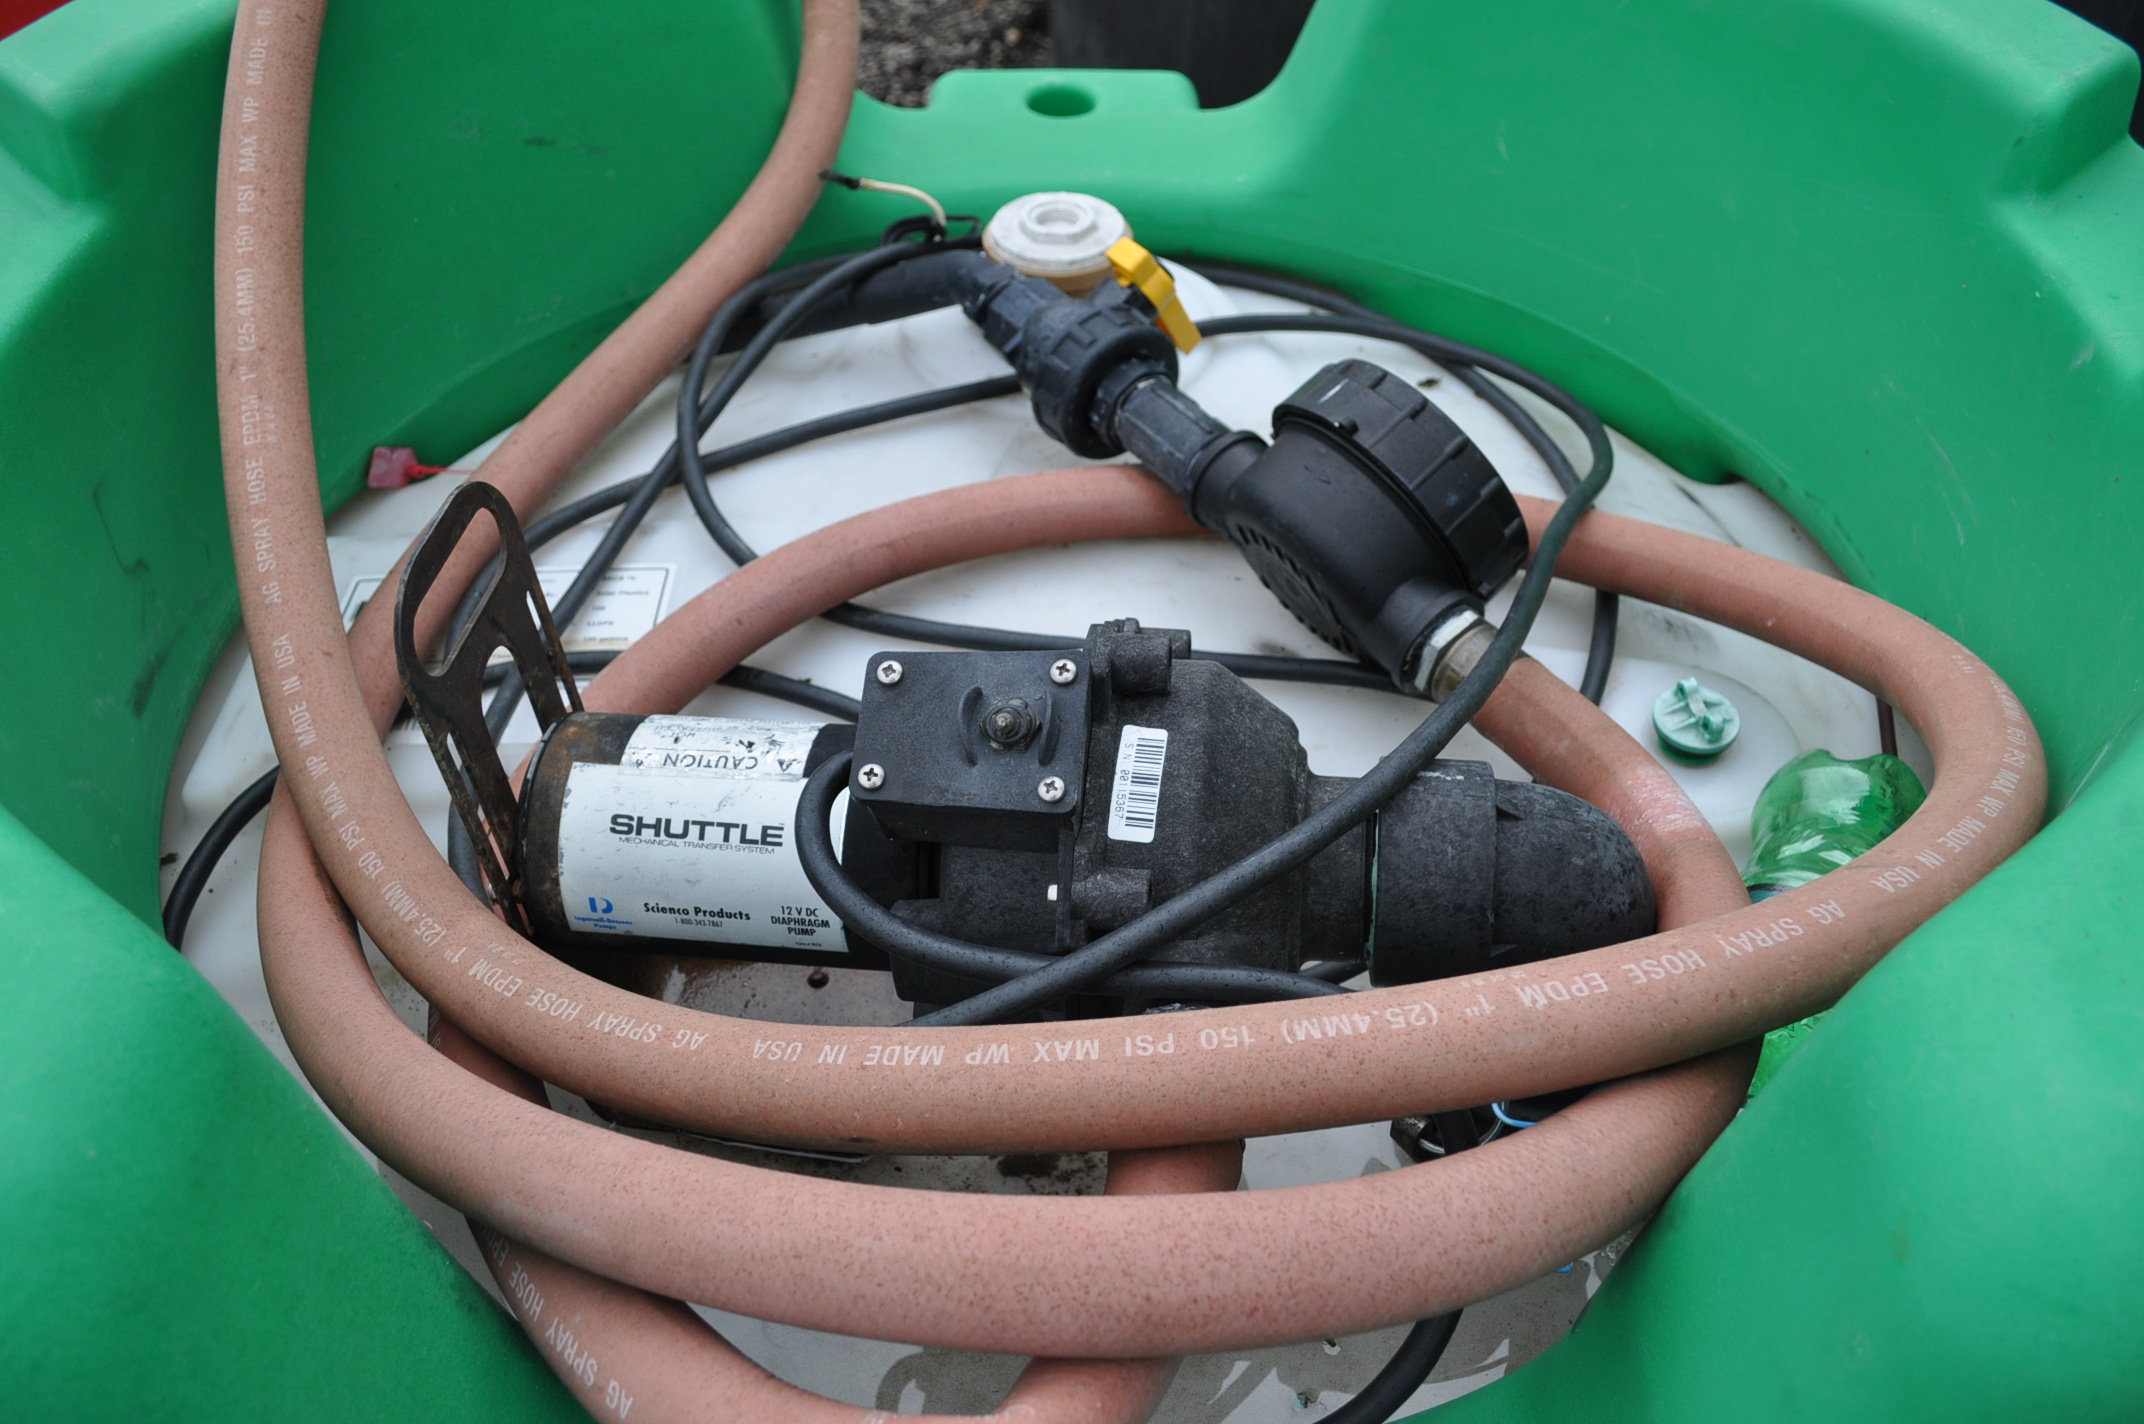 poly chemical shuttle with 12 volt pump, meter and hose - Image 2 of 2